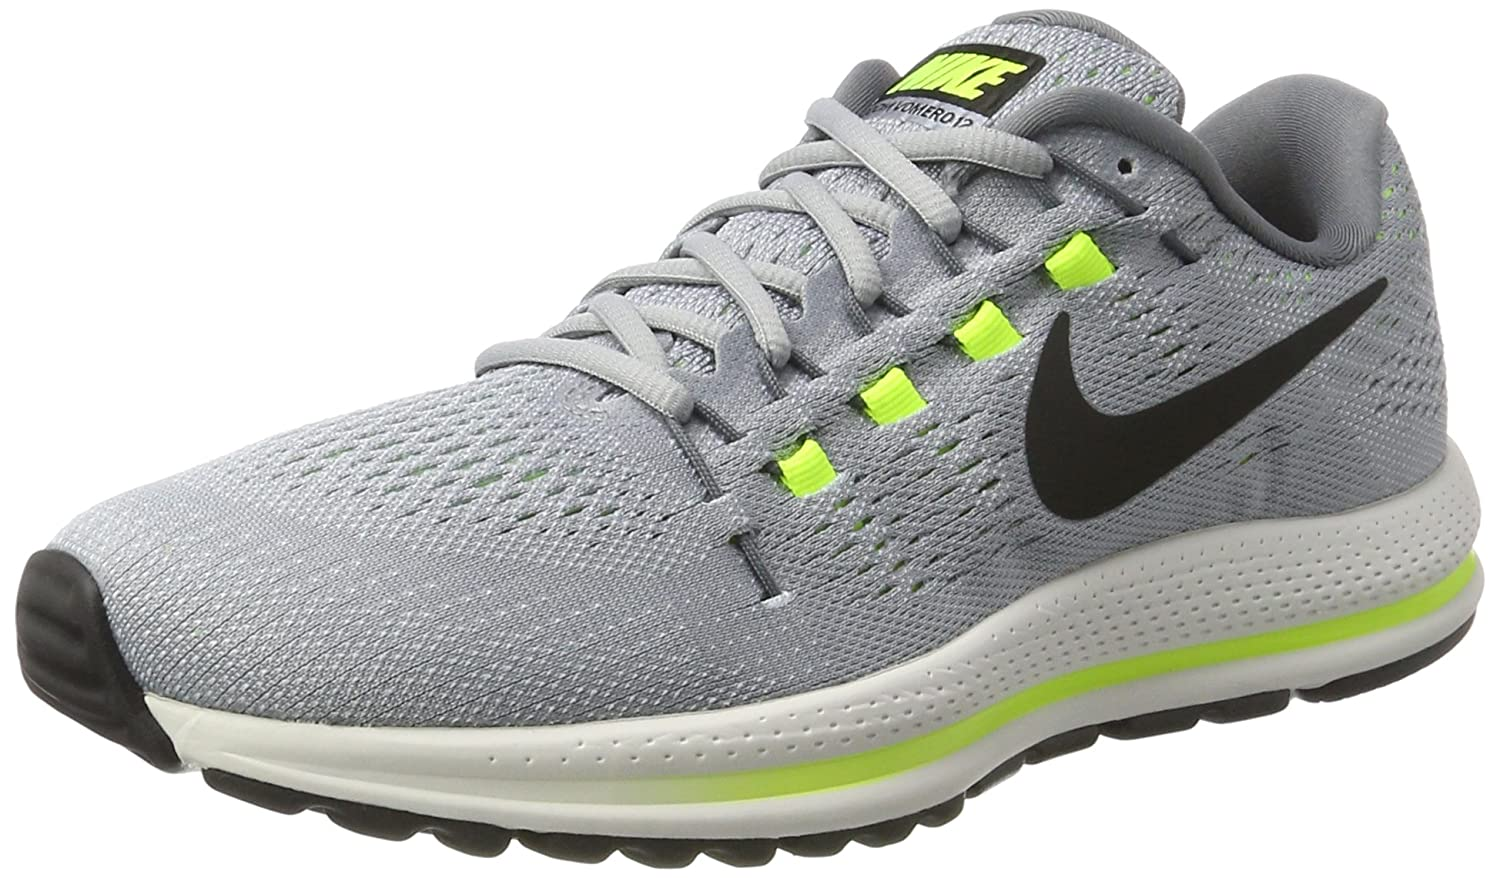 NIKE Men's Air Zoom Vomero 12 Running Shoe B001N6G3ZQ 10.5 D(M) US|Wolf Grey/Black-cool Grey-pure Platinum